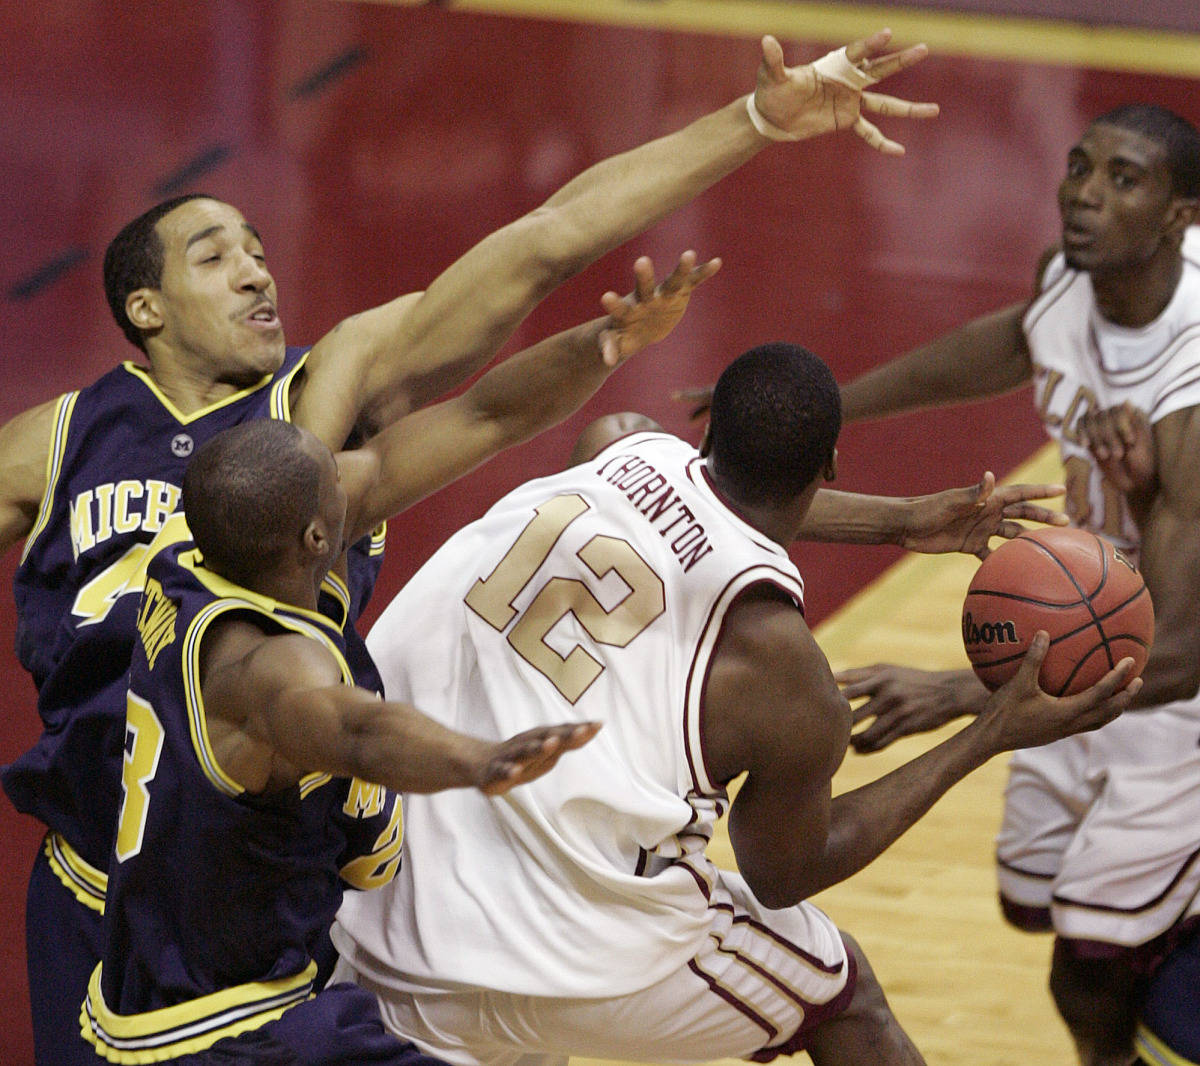 Florida State's Al Thornton is defended by Michigan's Courtney Sims and Brent Petway. (AP Photo/Steve Cannon)